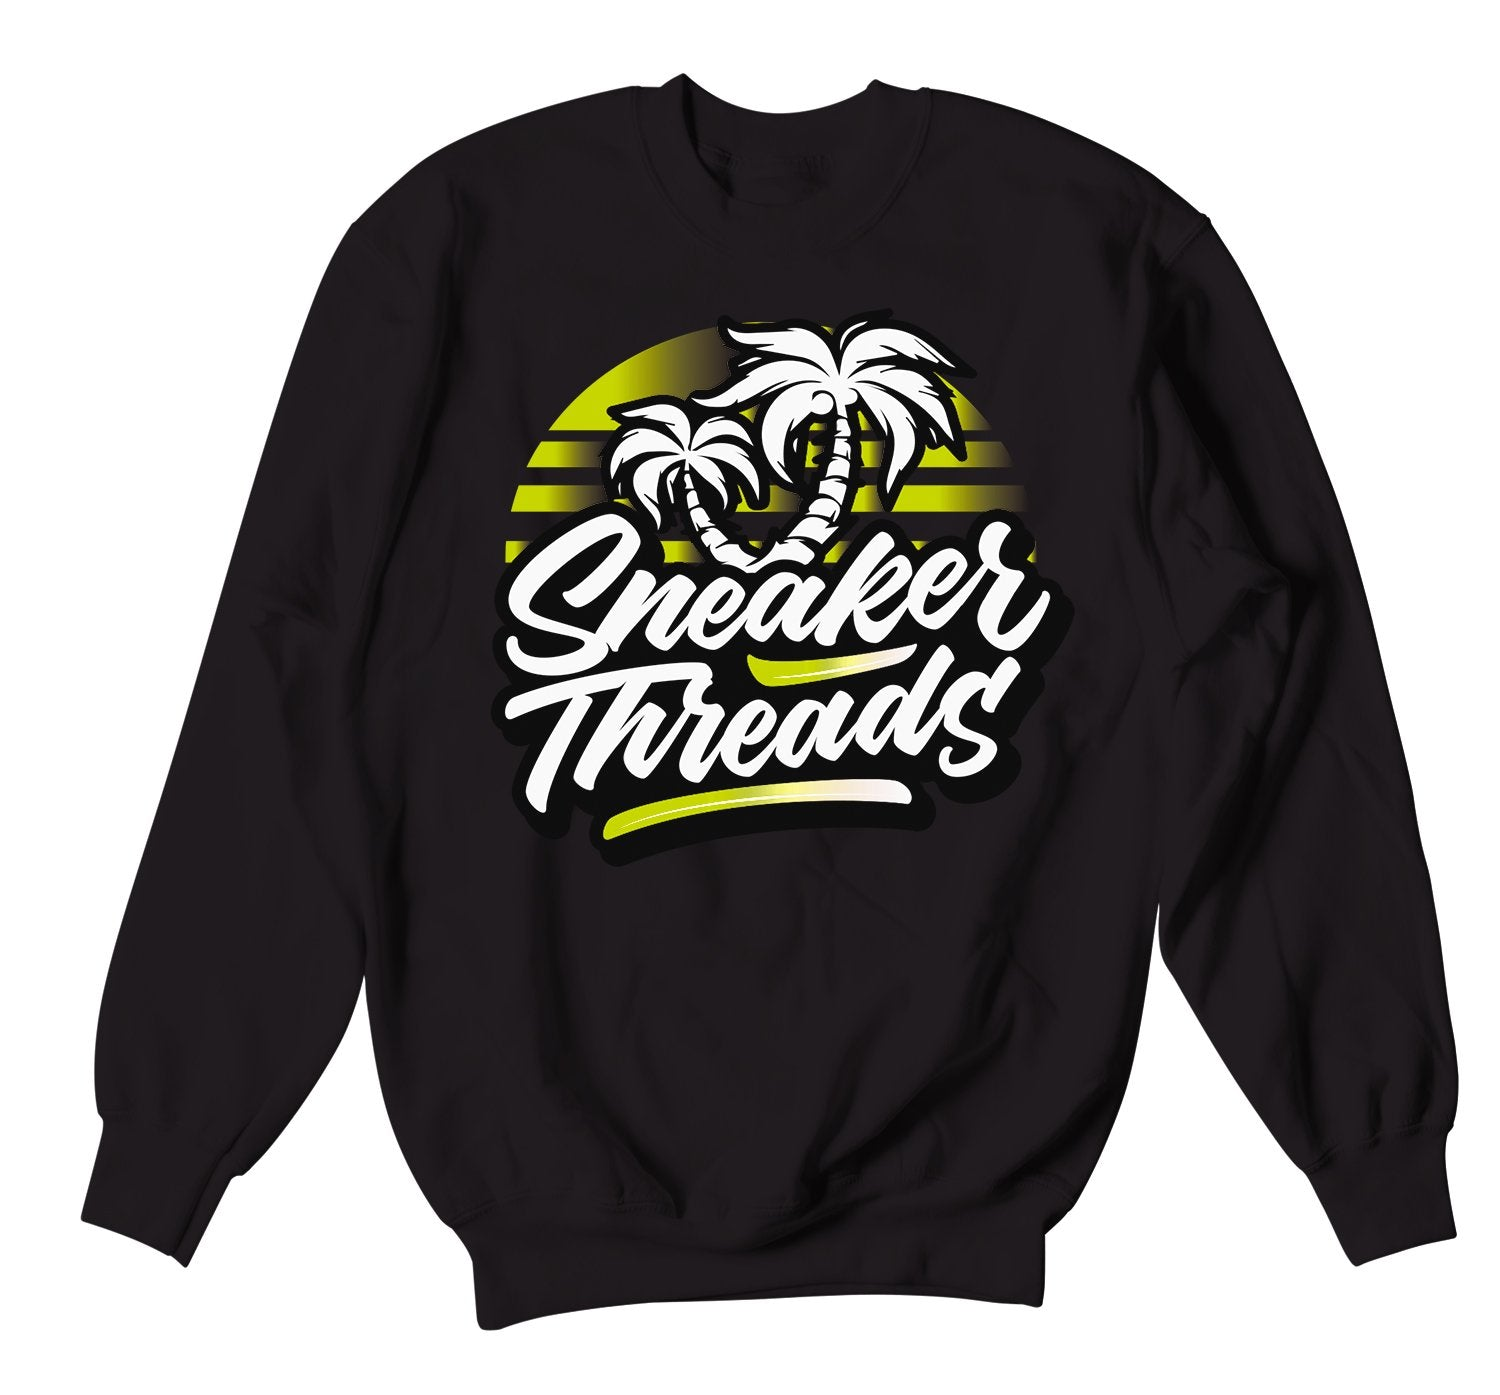 Crewnecks designed to match the yeezy yeezreel sneaker collection